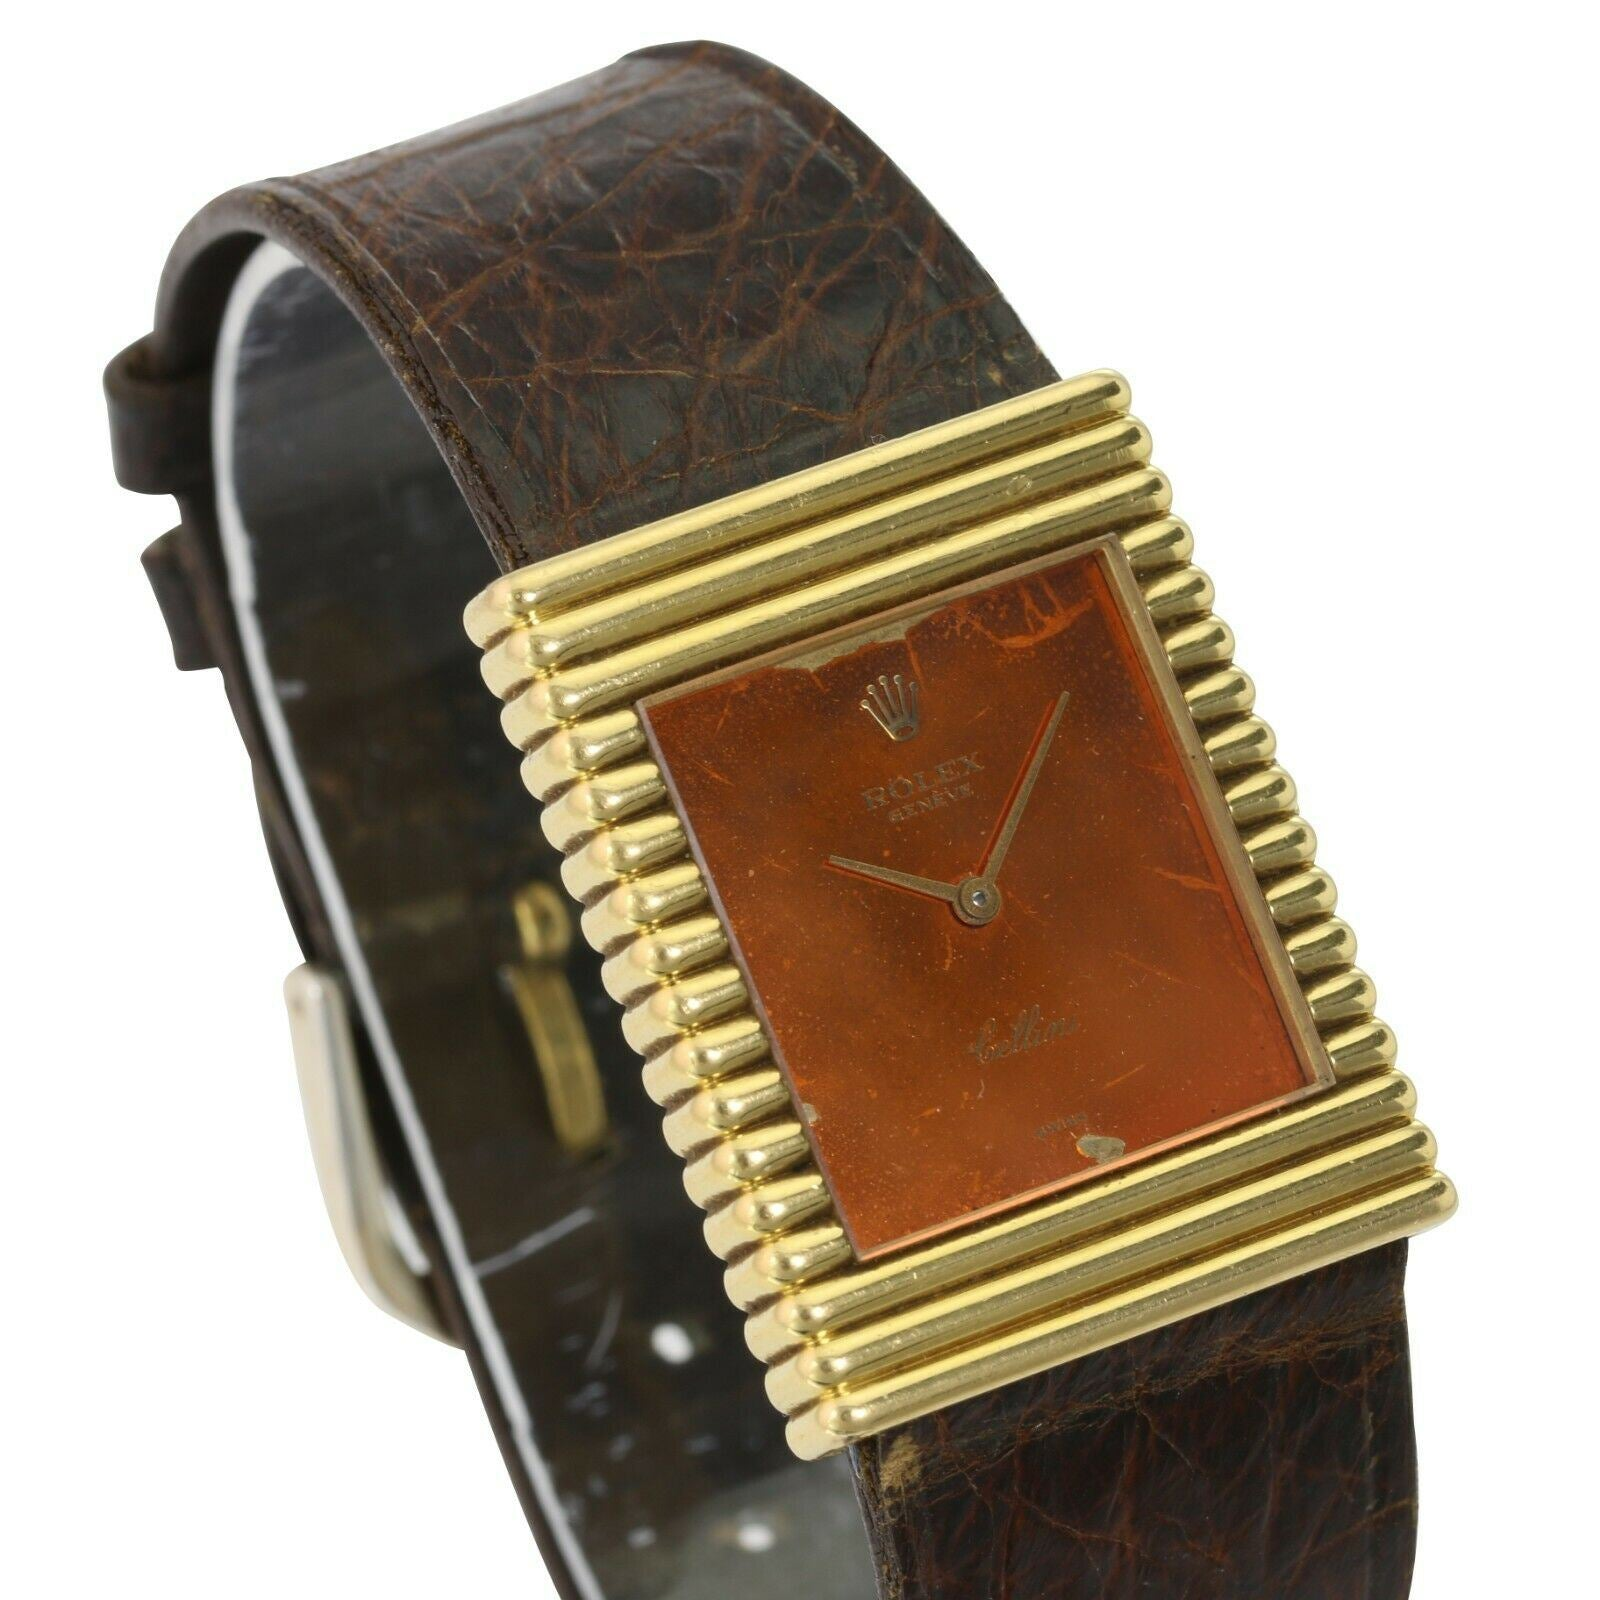 Factory Rolex Cellini 18K Solid Gold  Vintage Swiss Manual Winding Watch - Time Keepers Vault